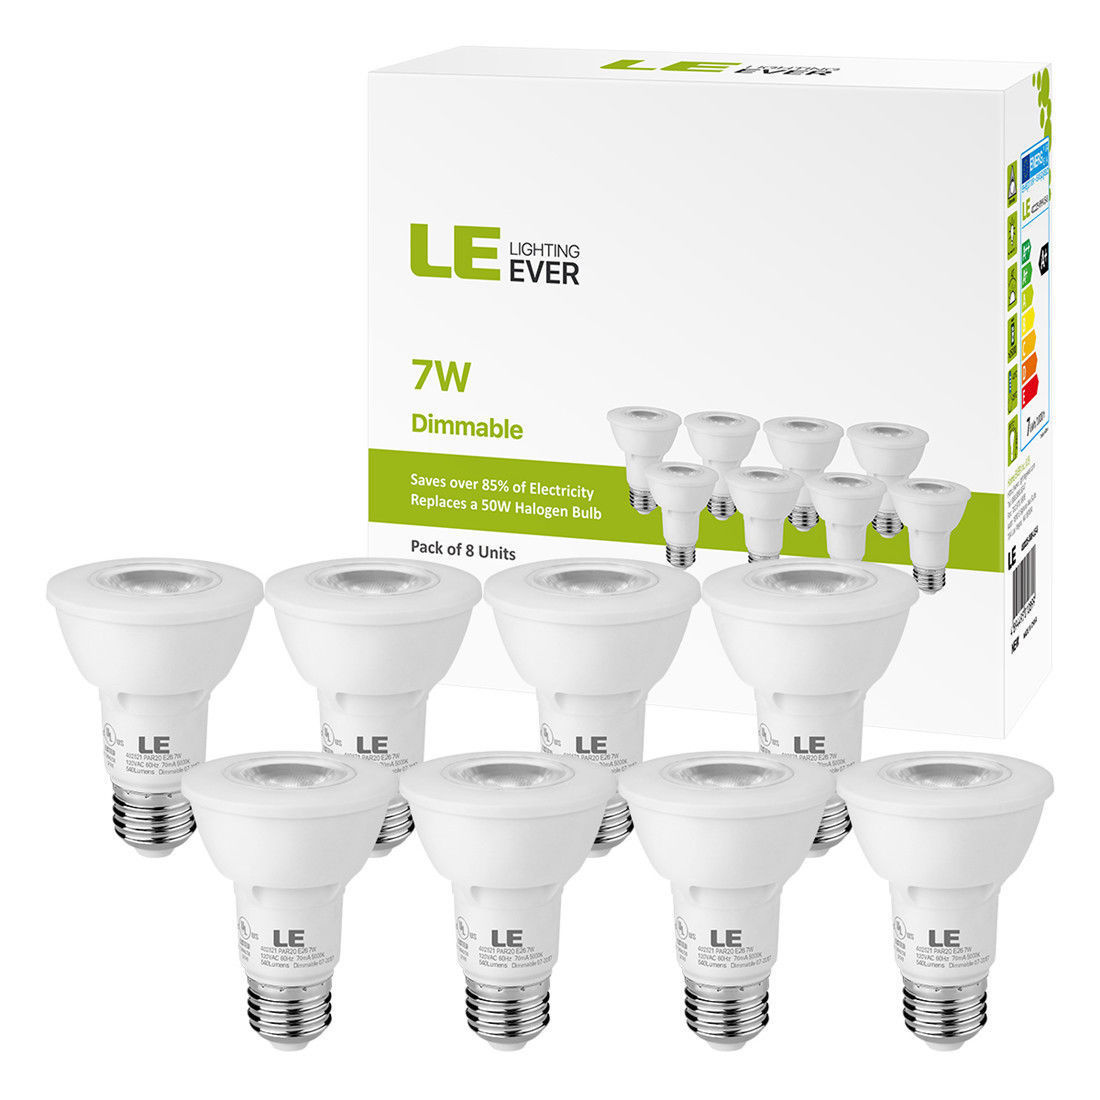 Lighting EVER 8 x PAR20 LED Bulb 50W Equivalent Flood Light Bulbs 5000K Daylight Dimmable